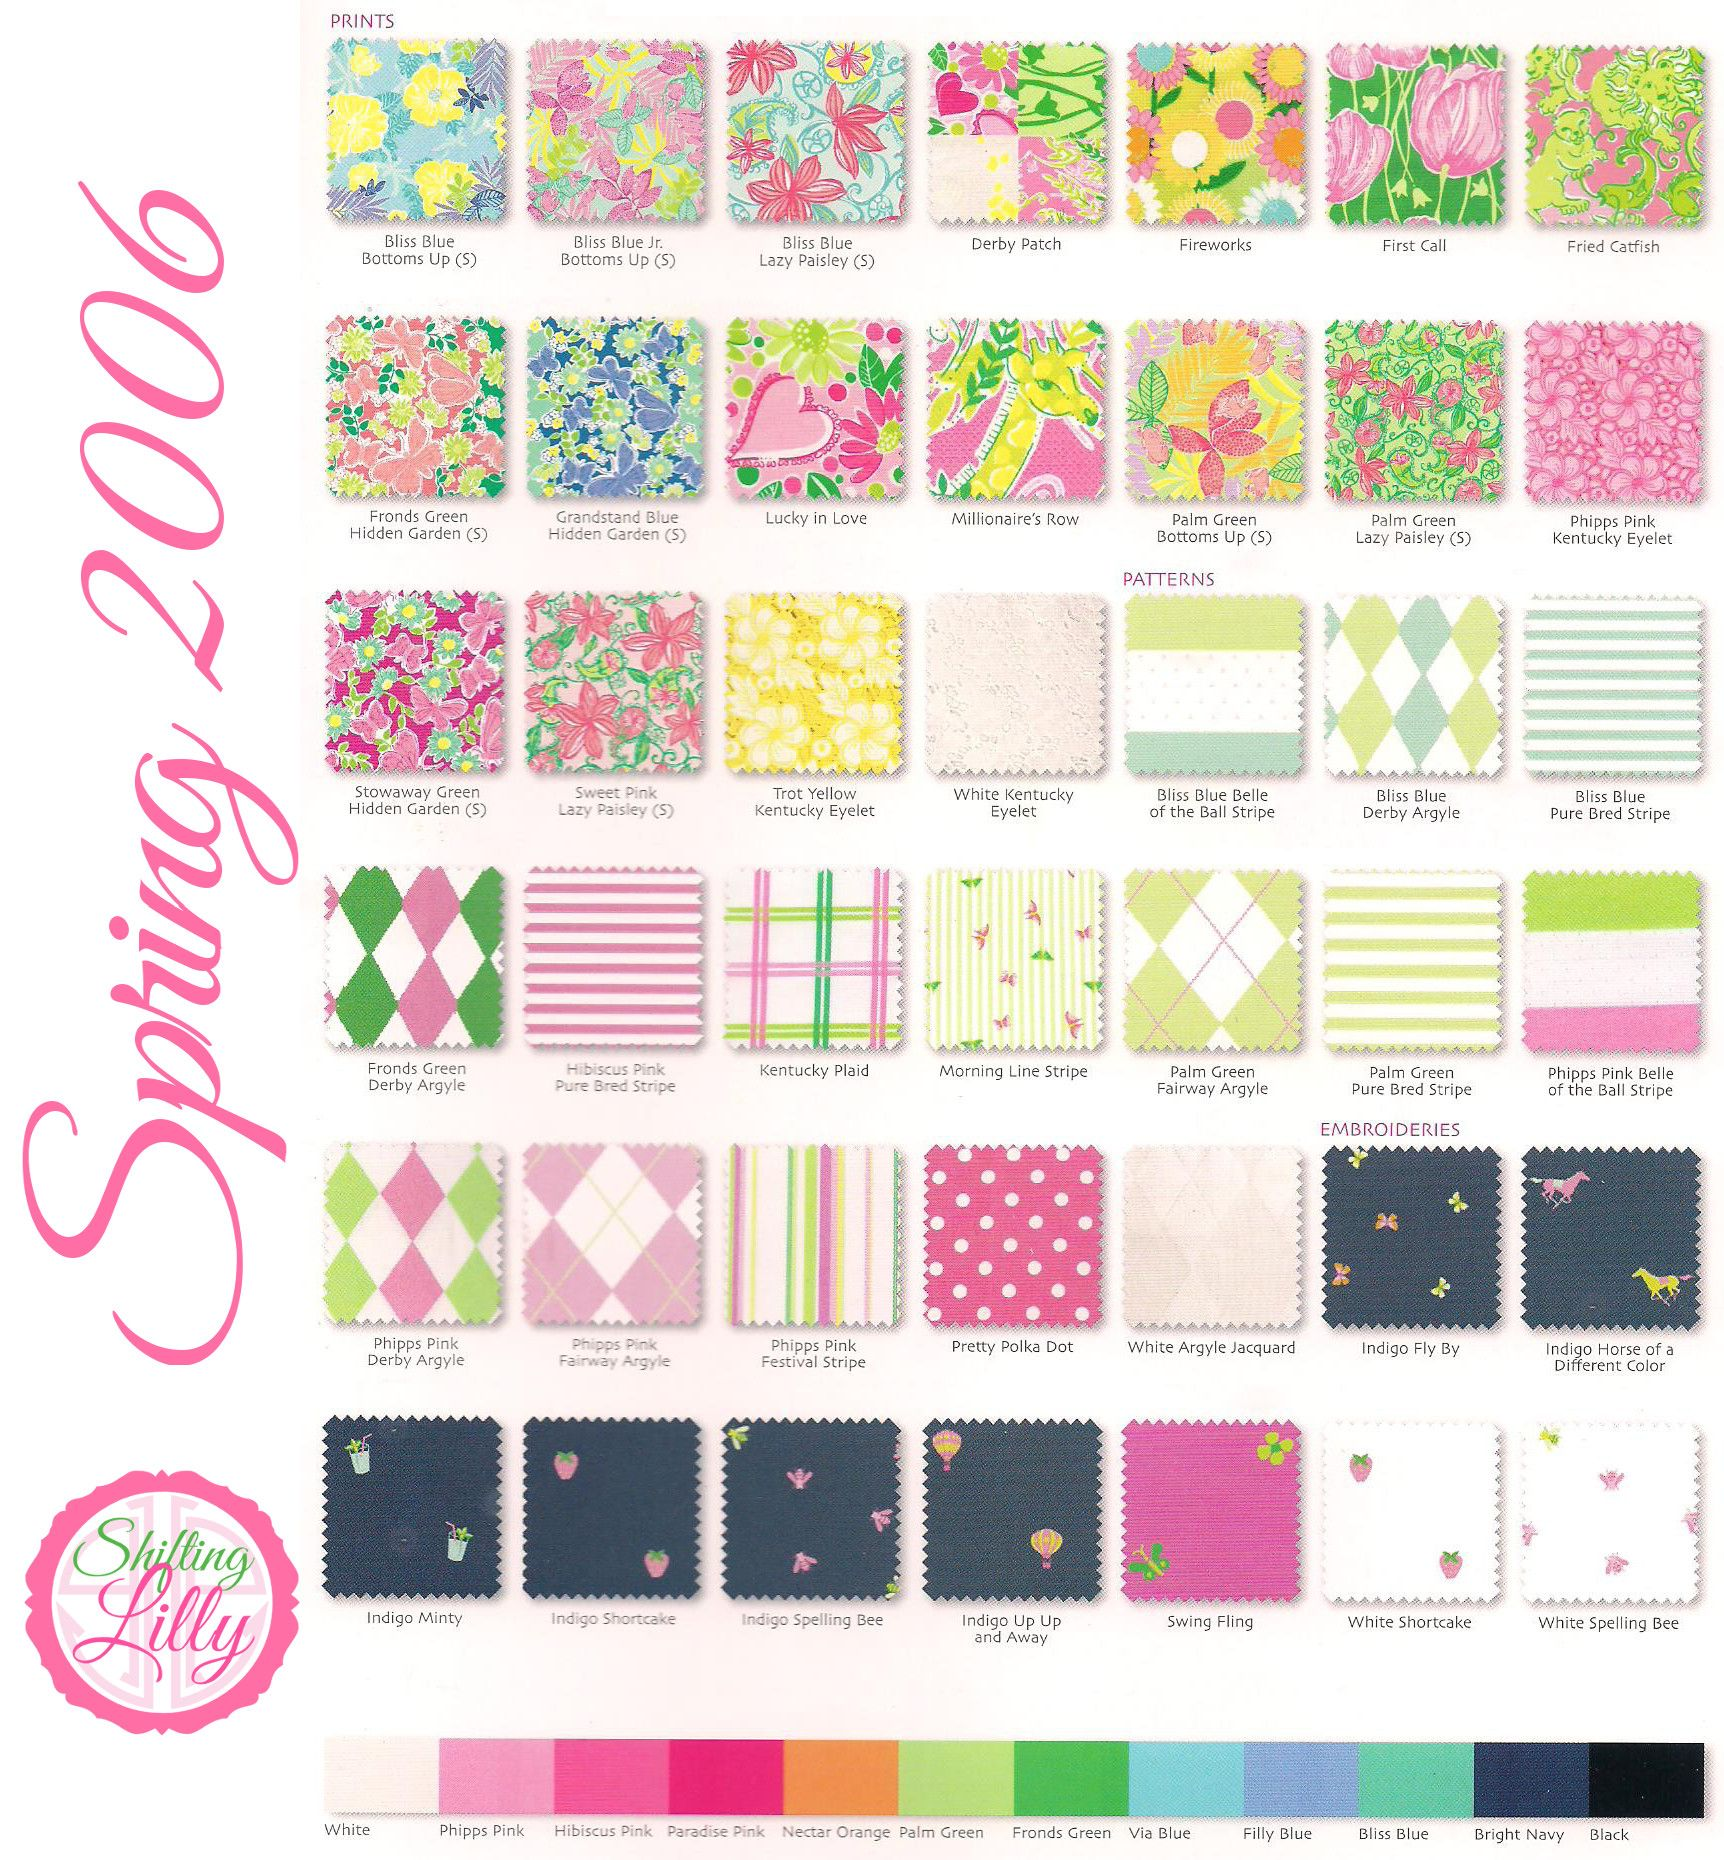 384877a48b76d6 Lilly Pulitzer Prints From Spring 2006 Page 1 | Lilly Pulitzer ...